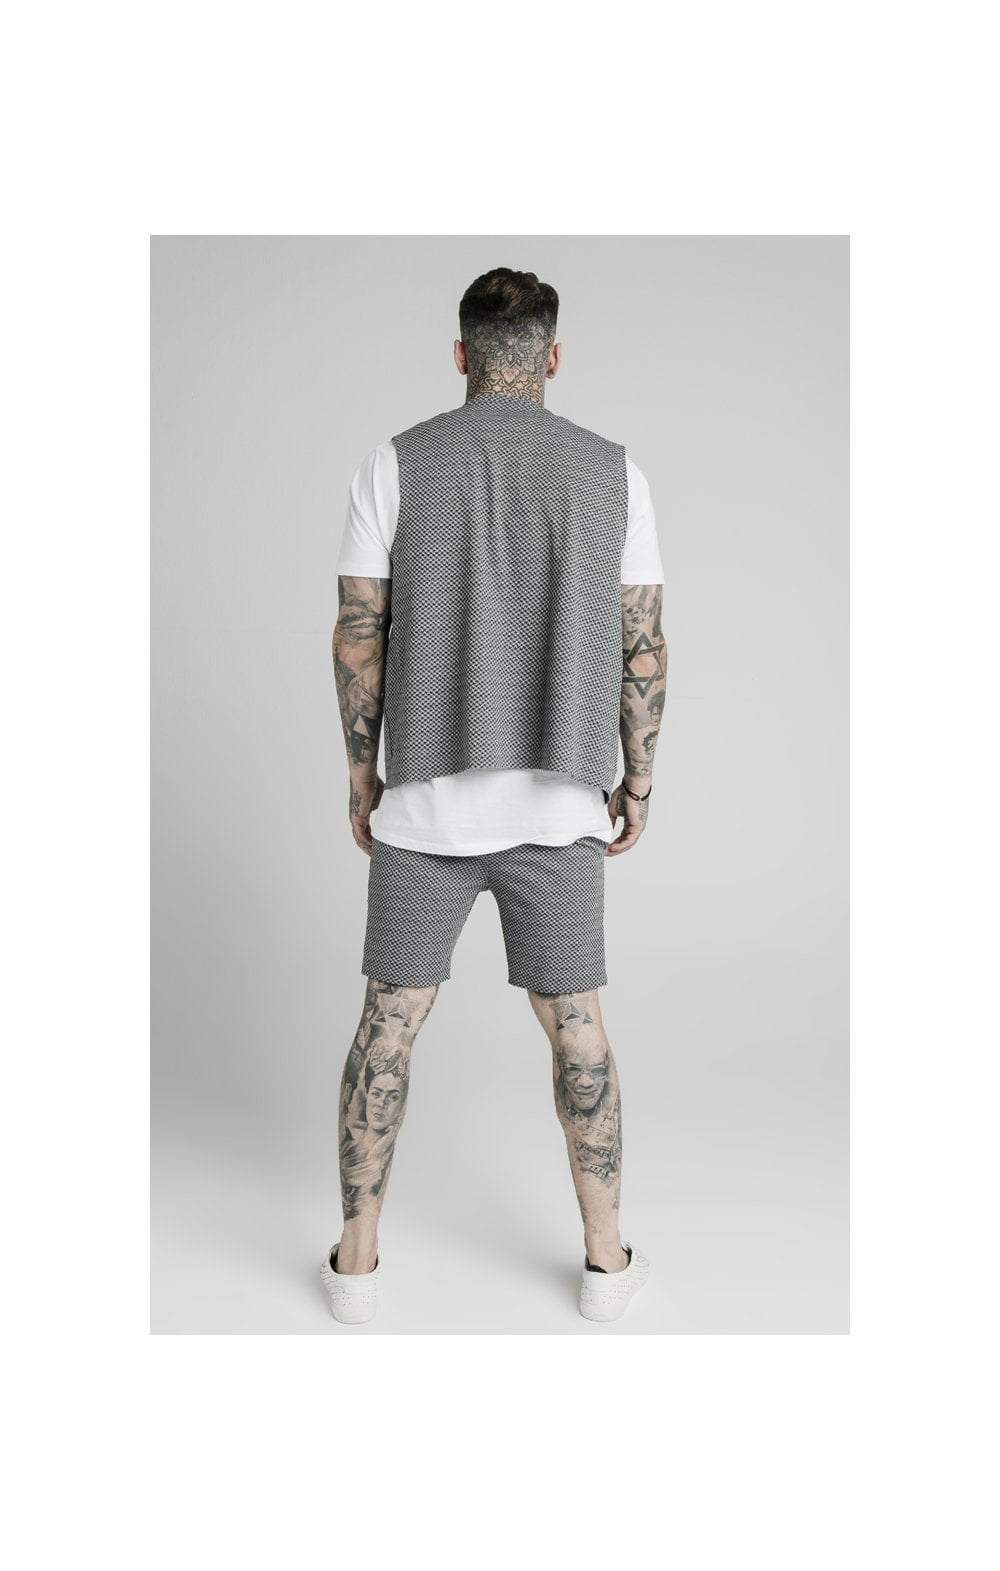 SikSilk Smart Wear Vest - Black & White Dogtooth (5)